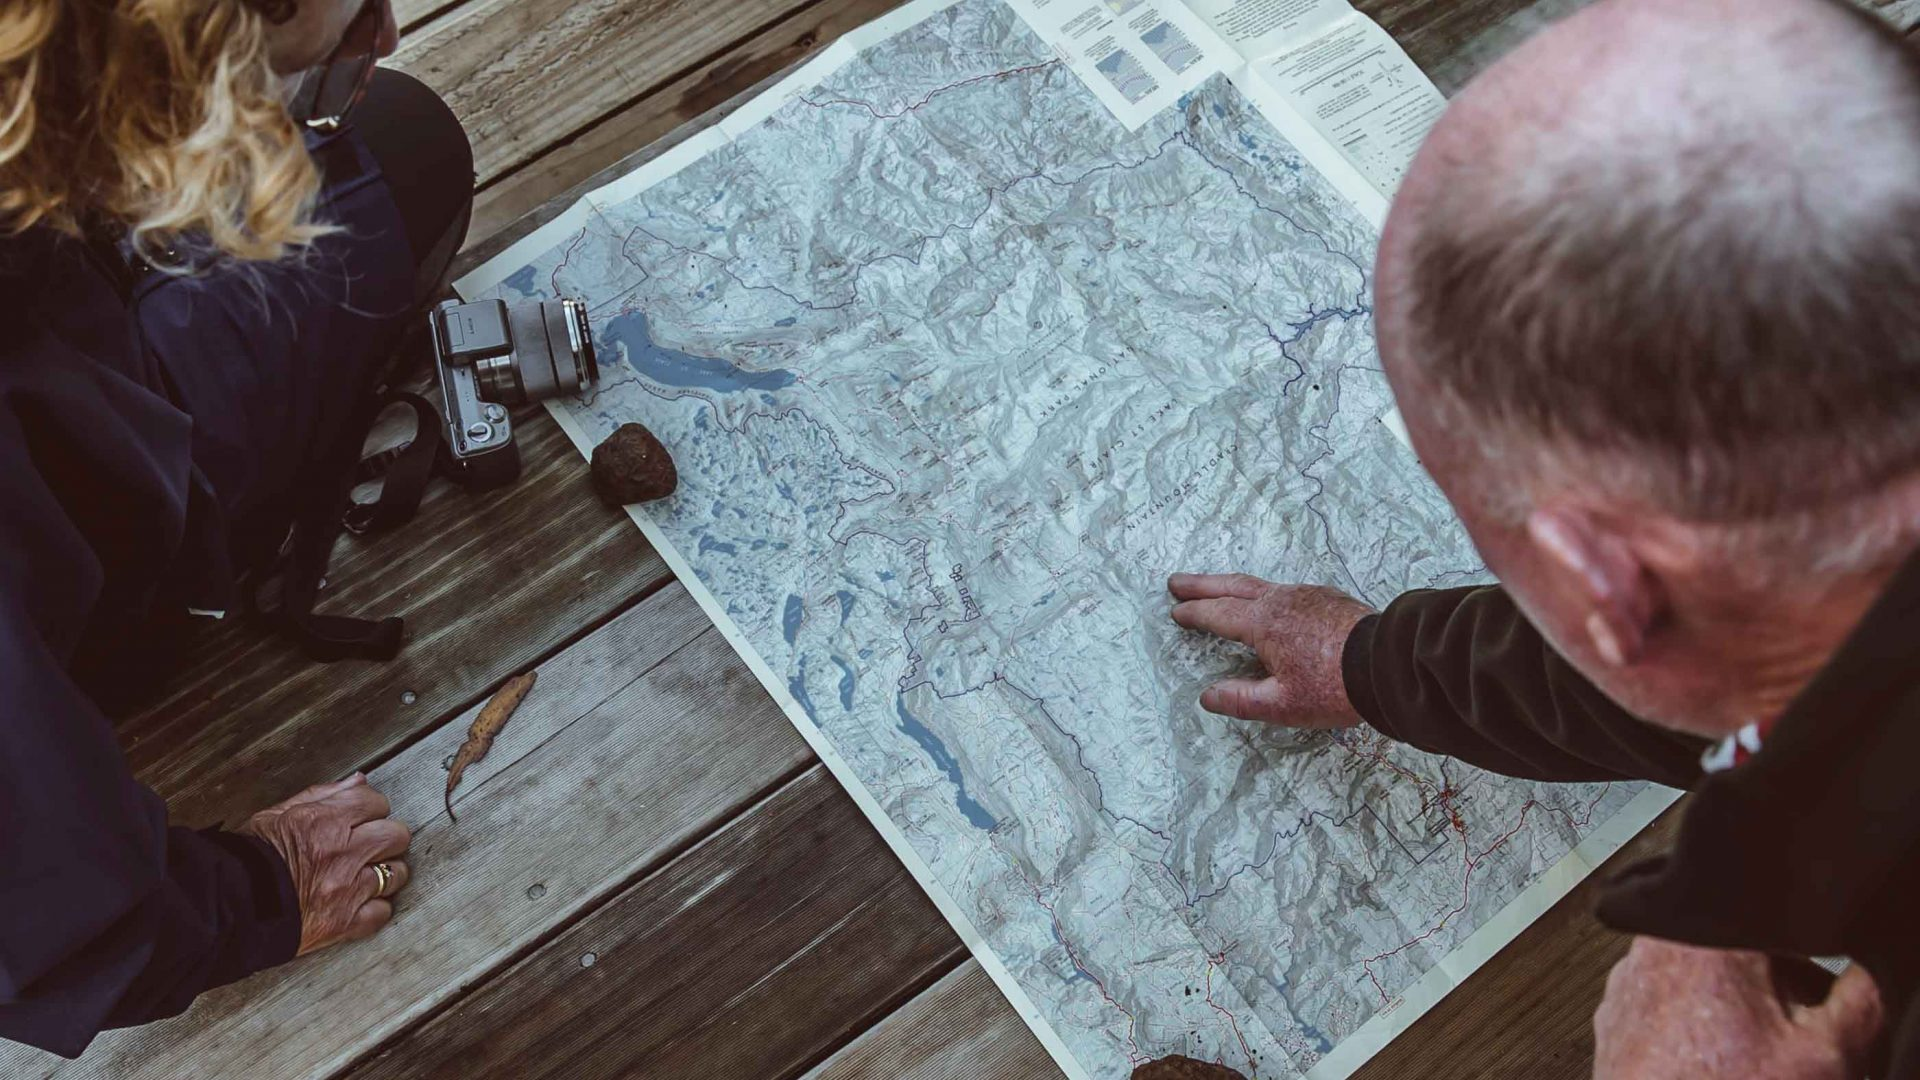 Reading the overland trail map.